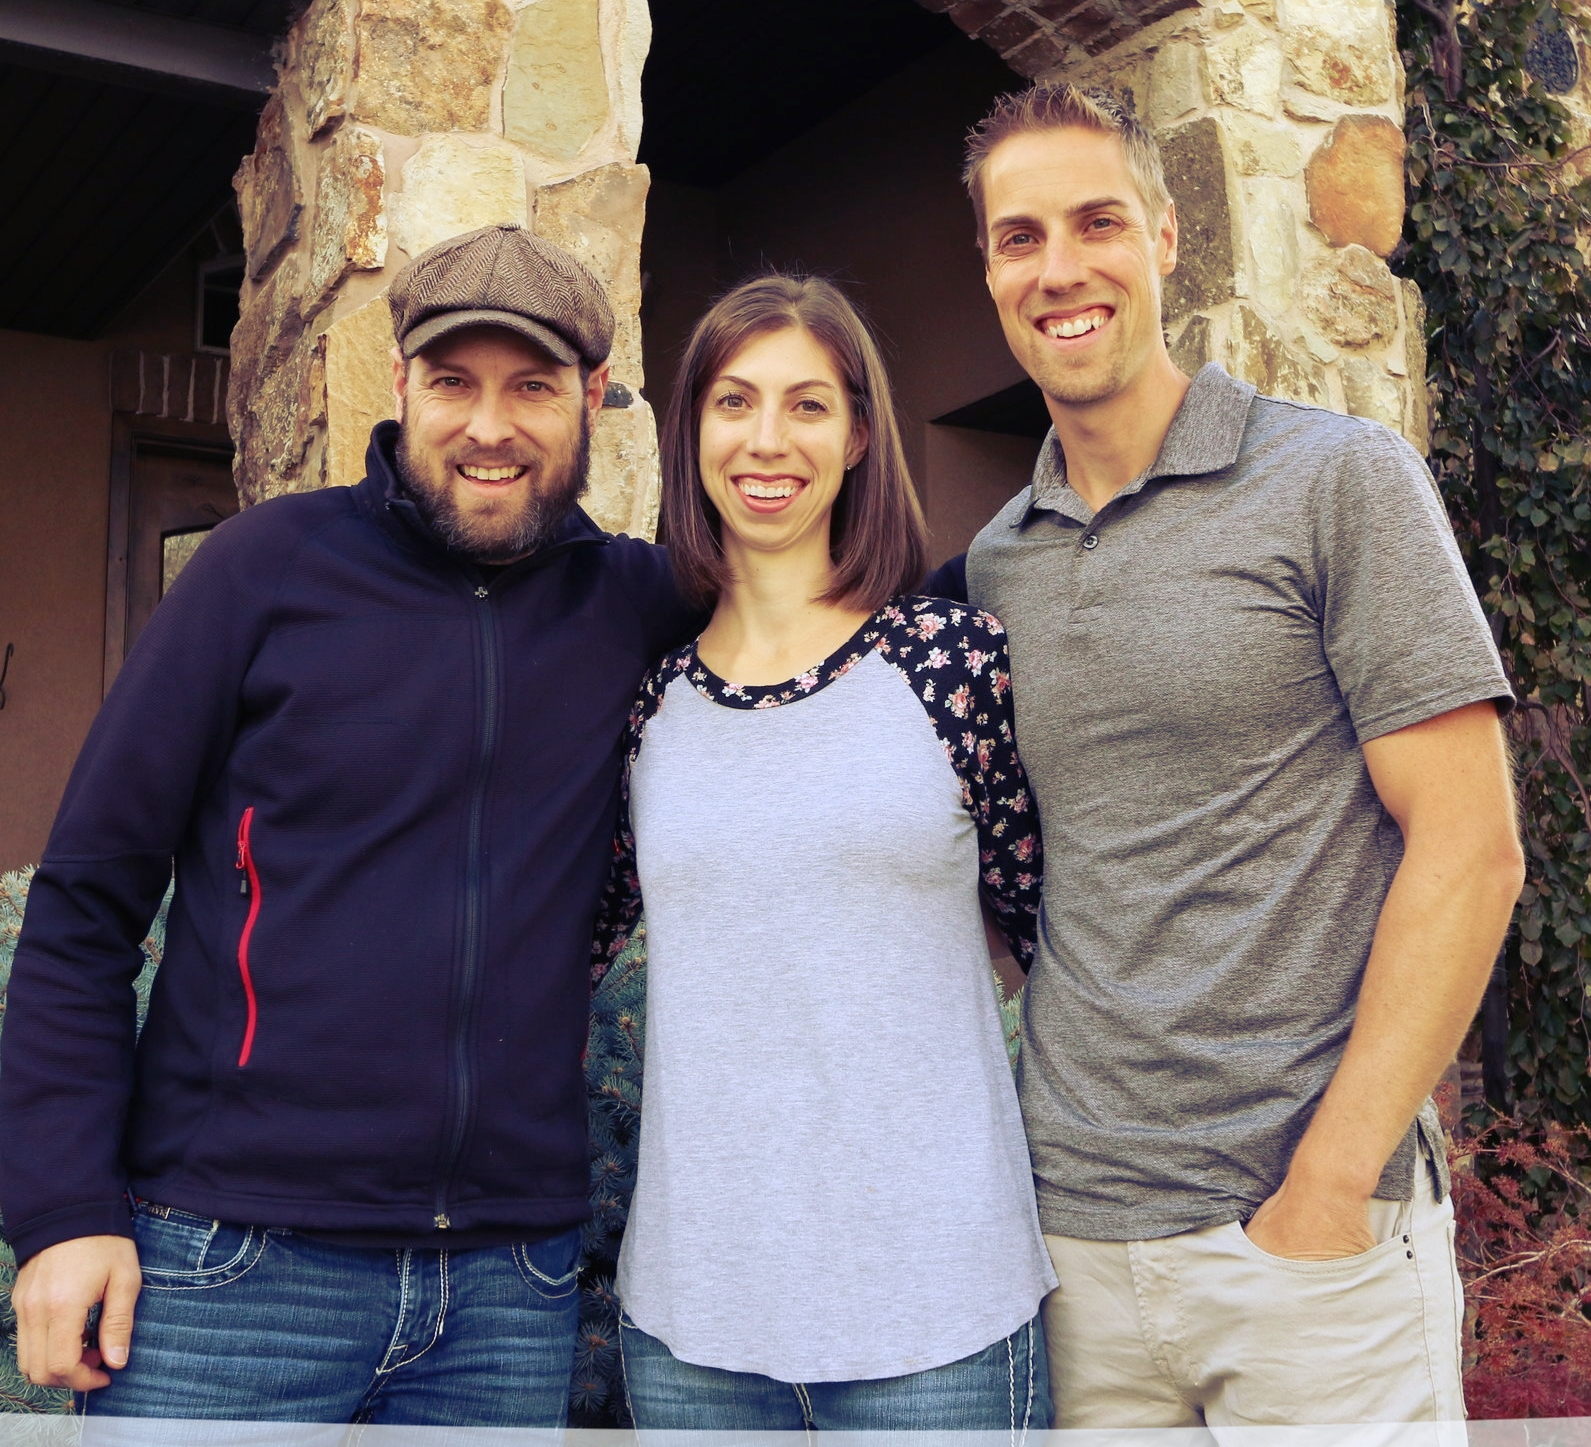 Left to right: Jason McFarland, Kelly Otteson &Andy McFarland